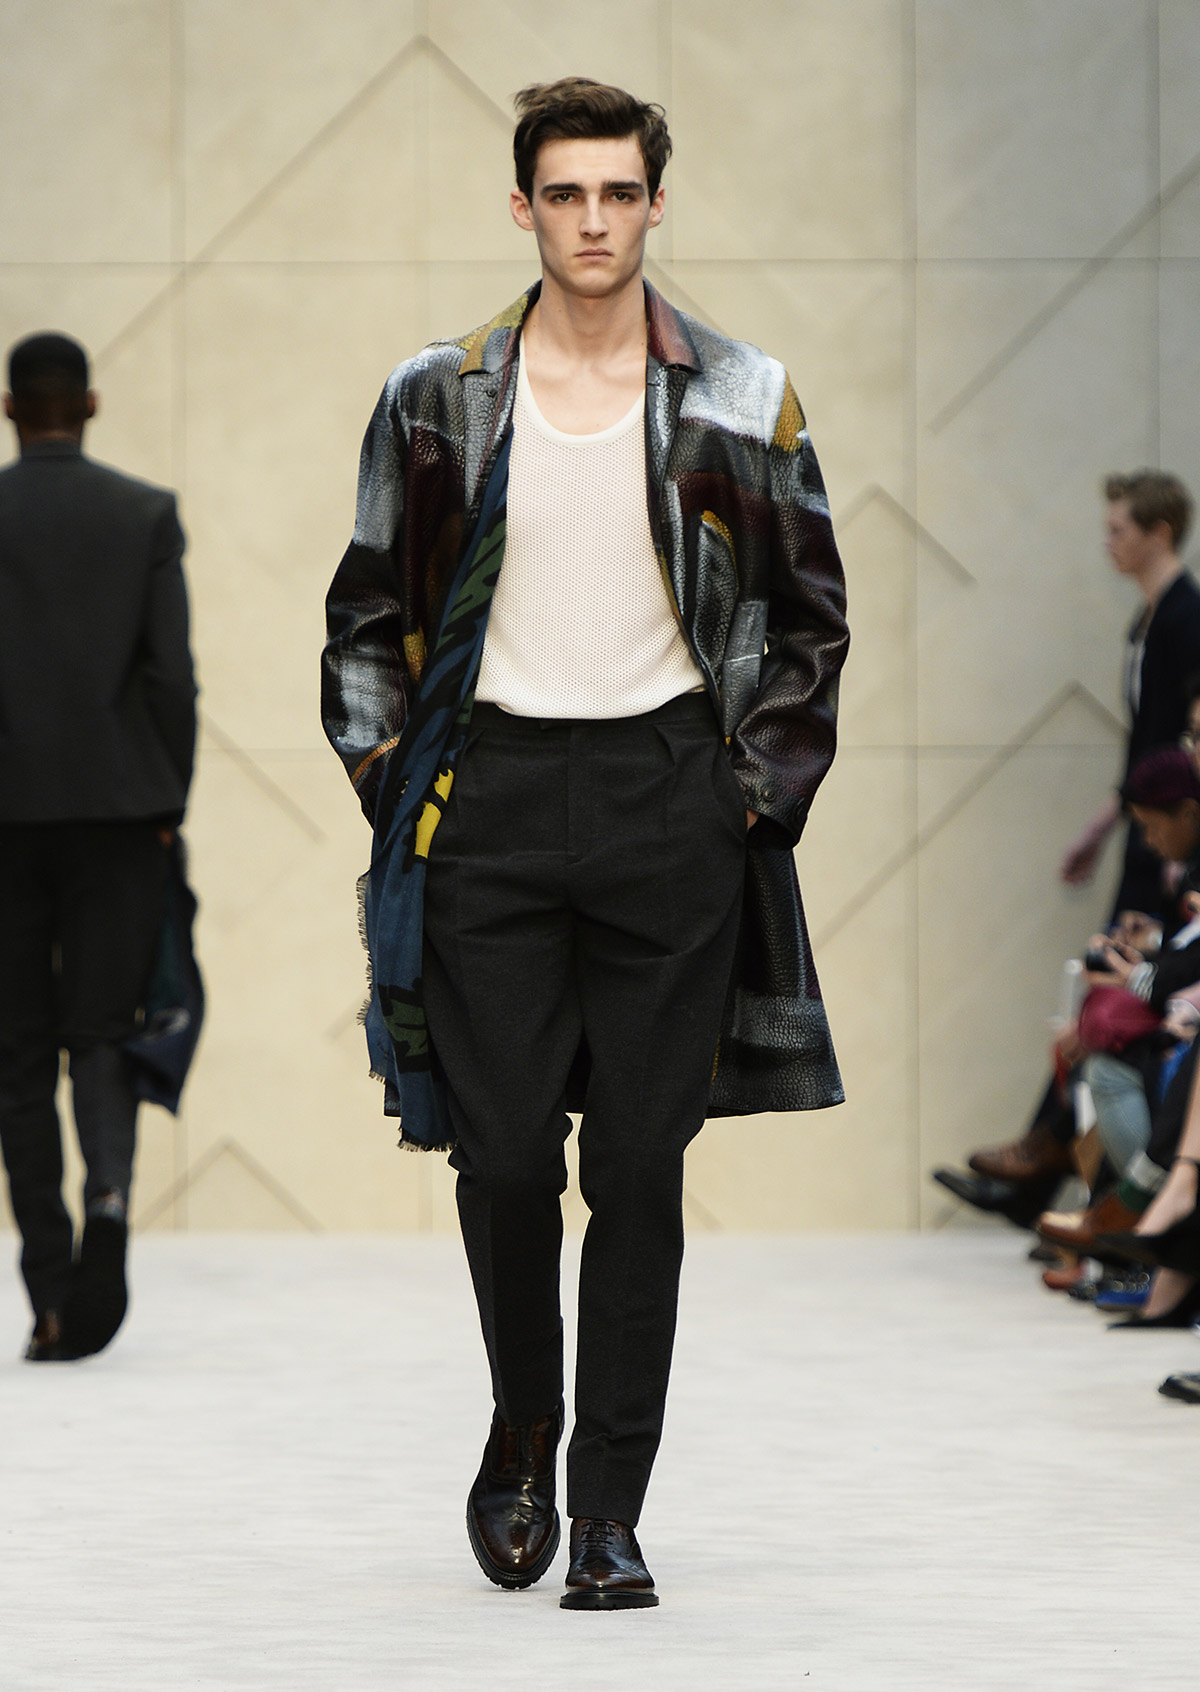 images Burberry Prorsum Menswear: SS13 Collection